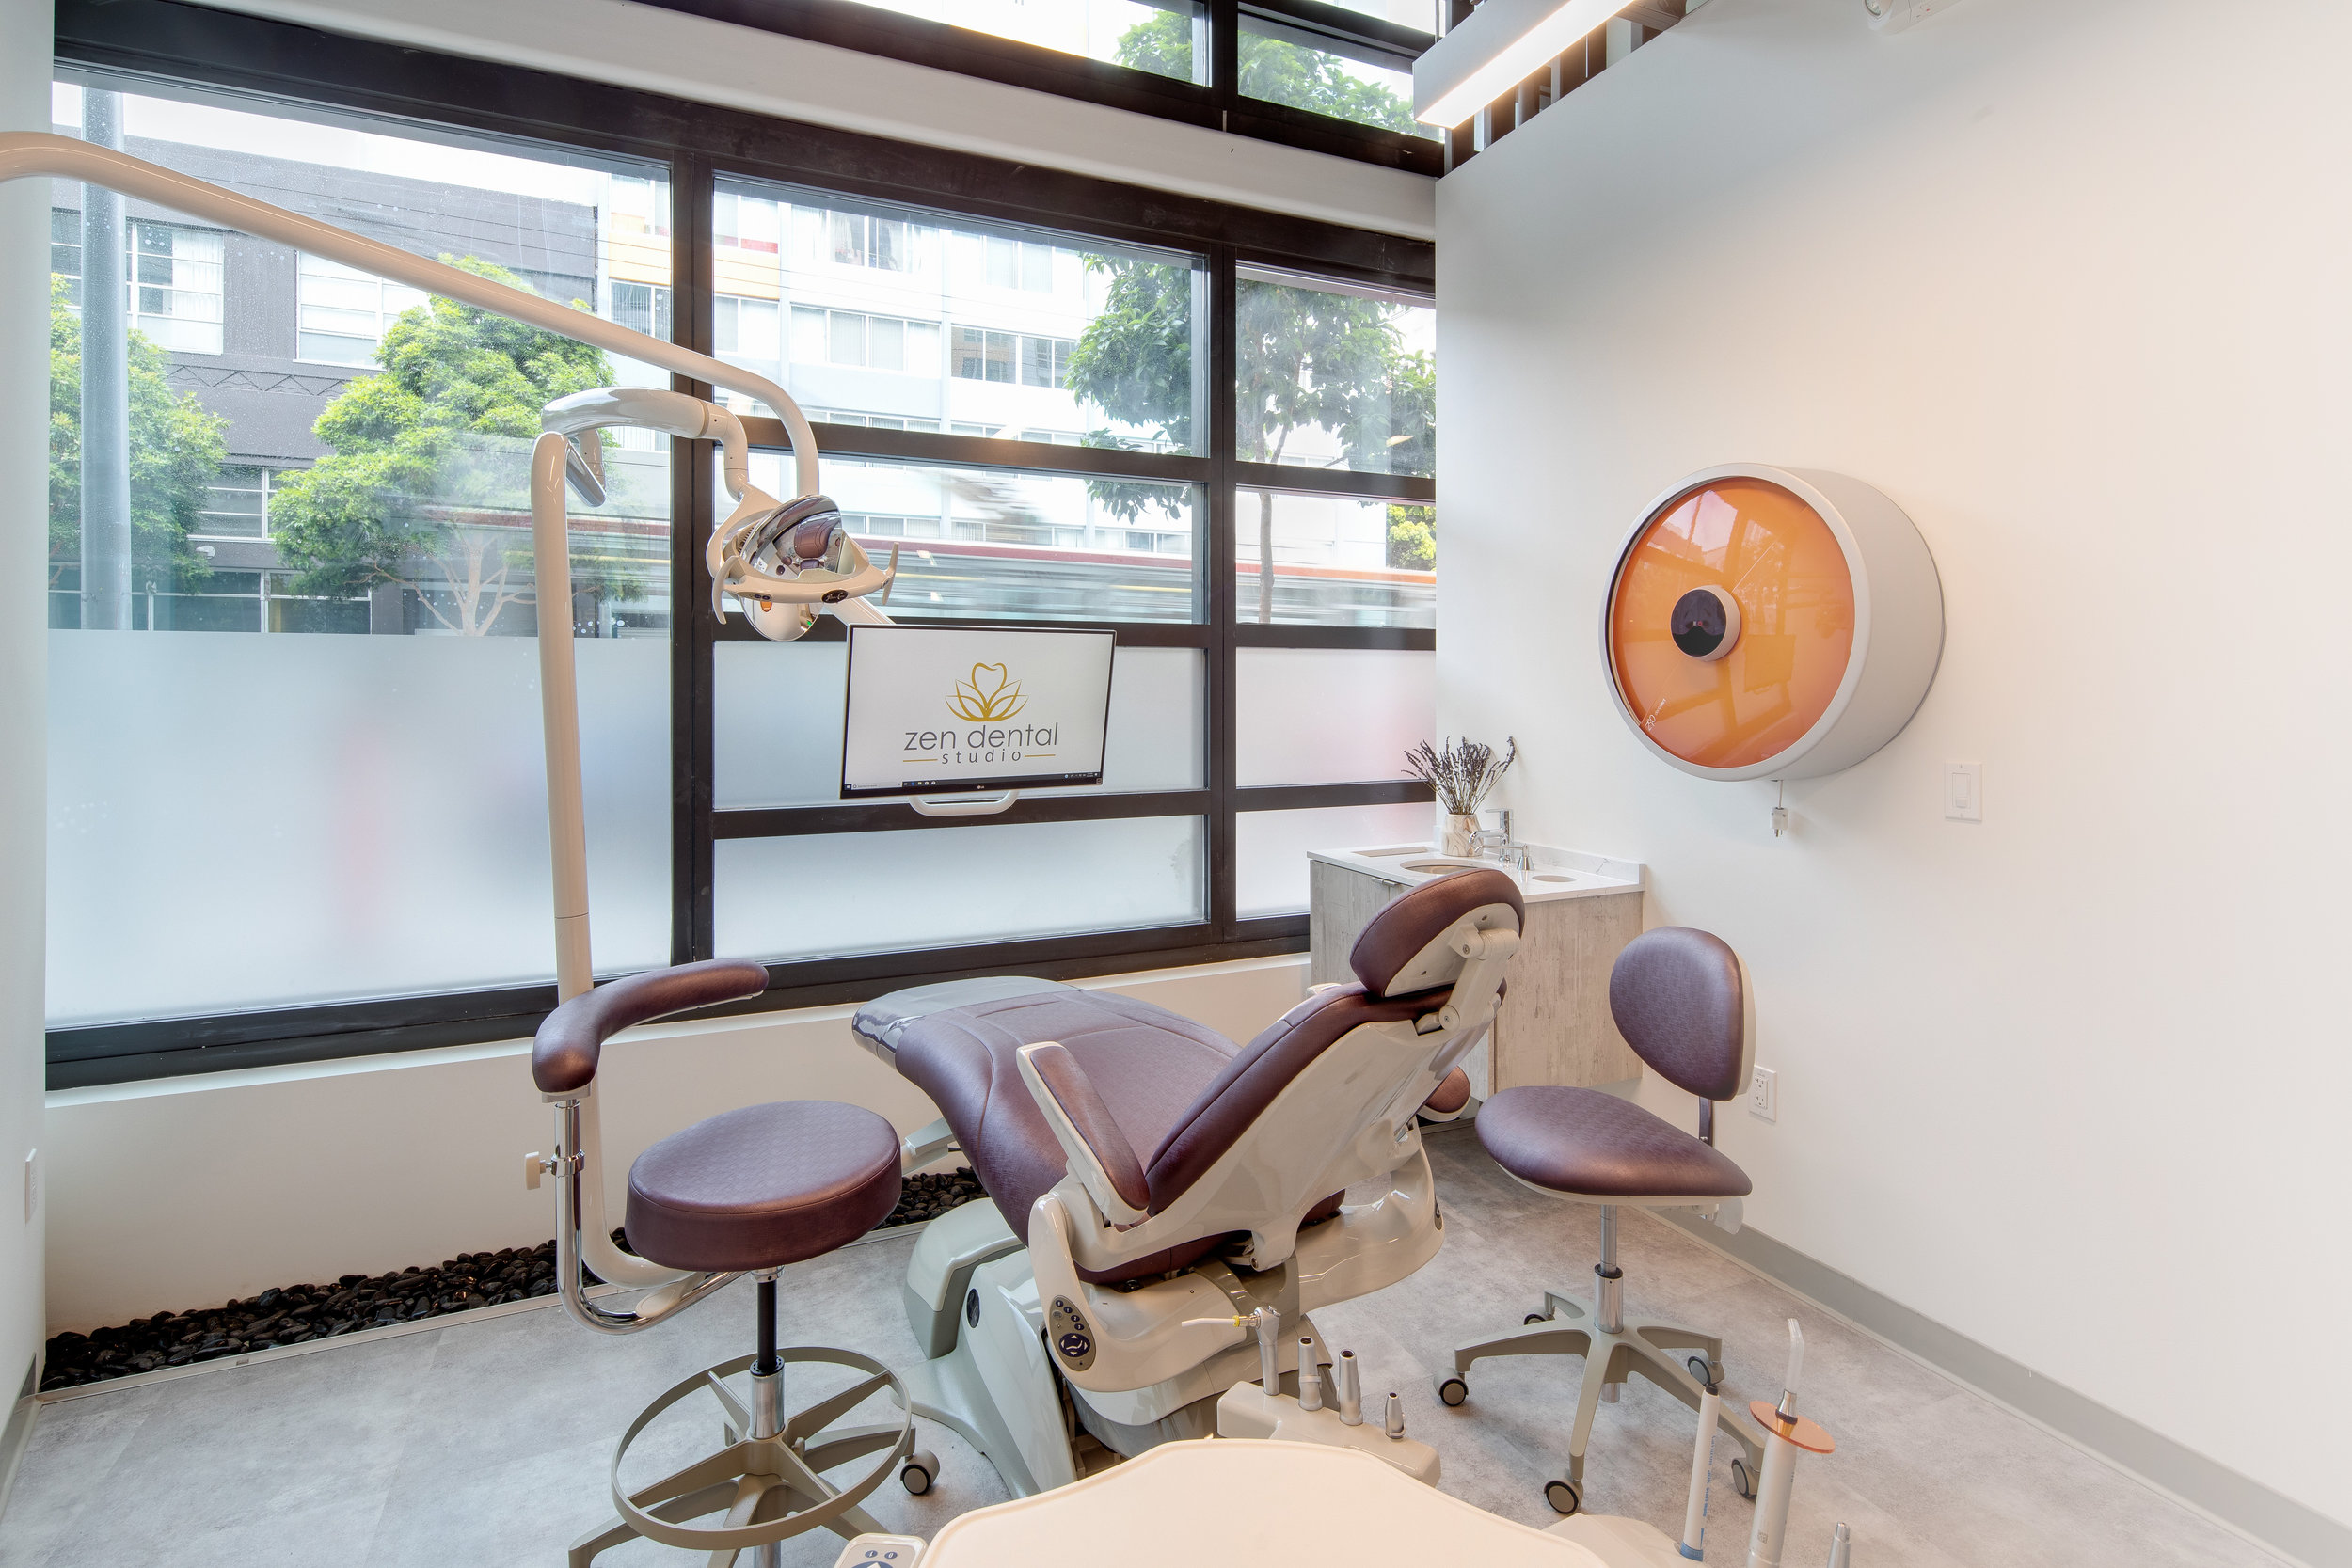 At Zen Dental Studio, we believe a beautiful smile starts from within. Equipped with latest technology, our expert staff provides exceptional dental care within a space designed for personal rejuvenation and renewal. -